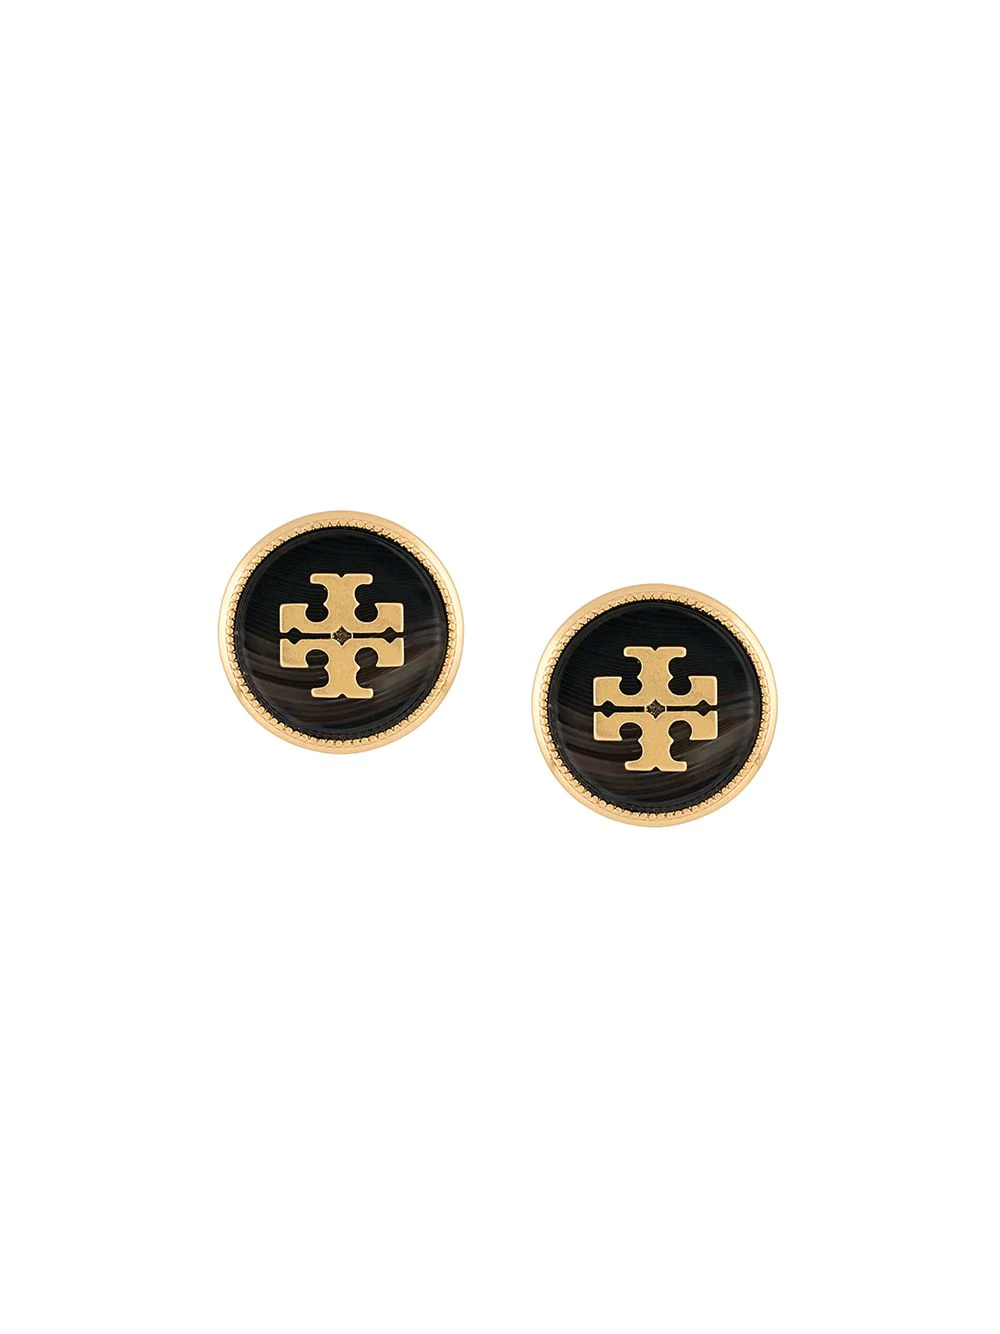 Tory Burch Round Logo Earrings - Metallic